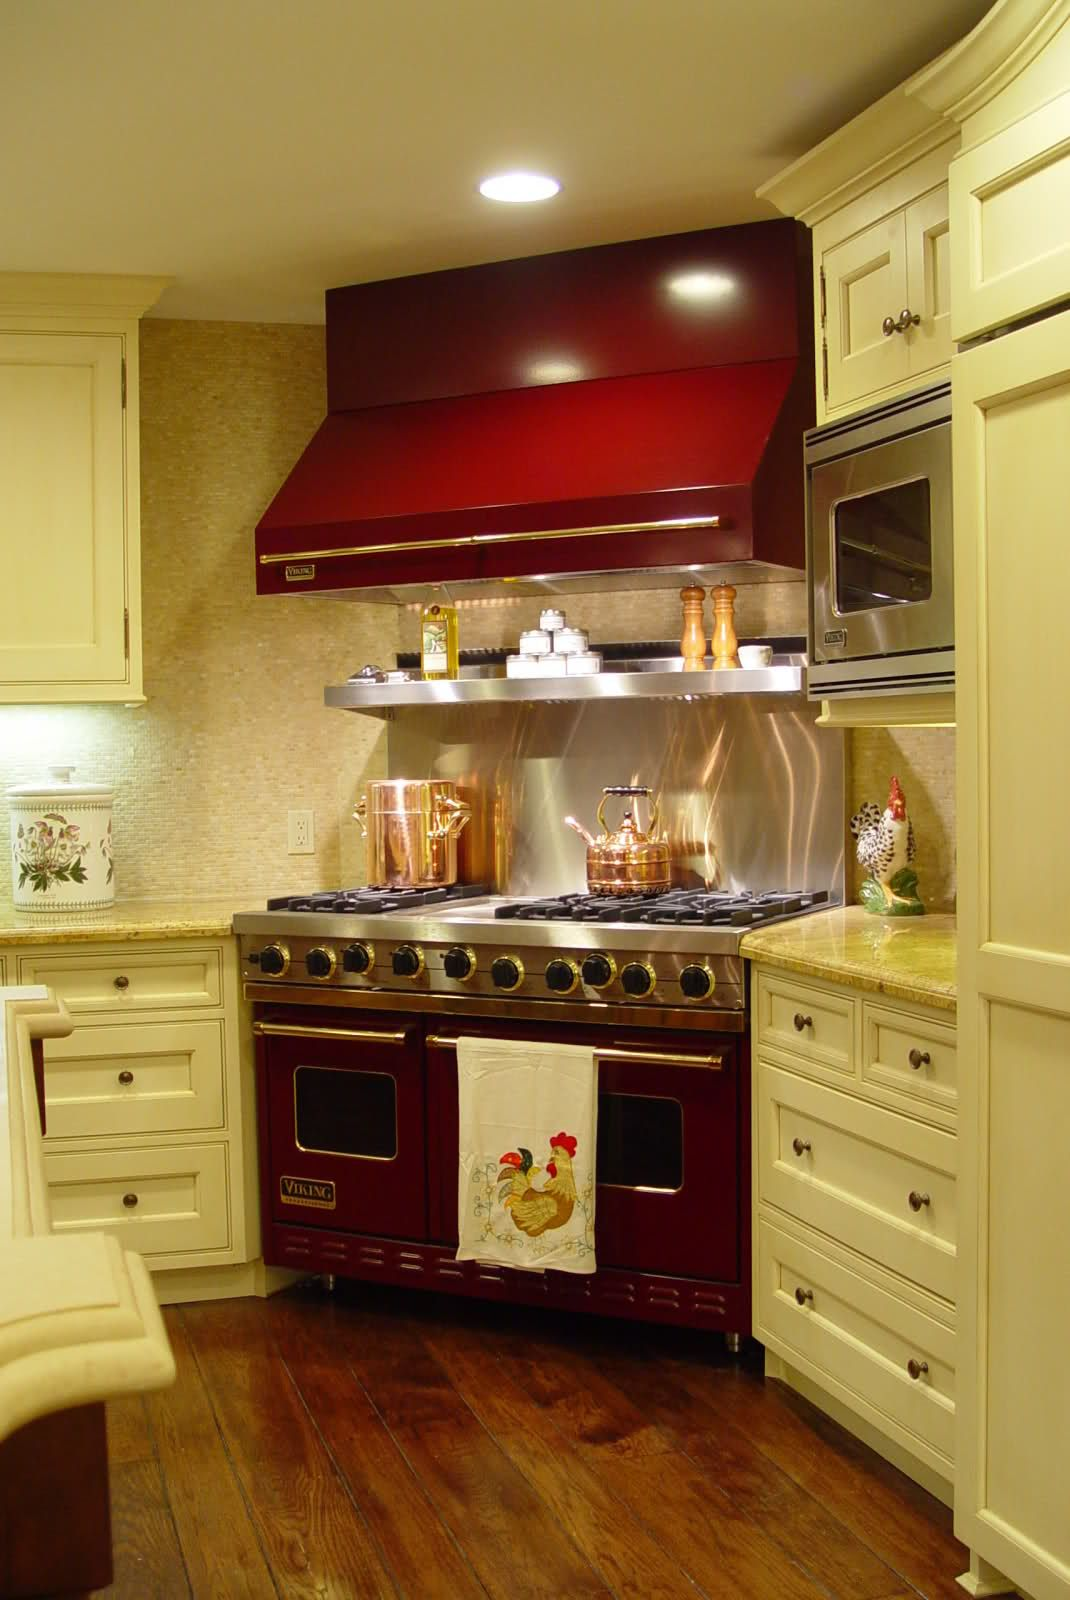 i love the white cabinets and the corner range kitchen remodel cost kitchen layout kitchen on kitchen remodel kitchen designs id=92942